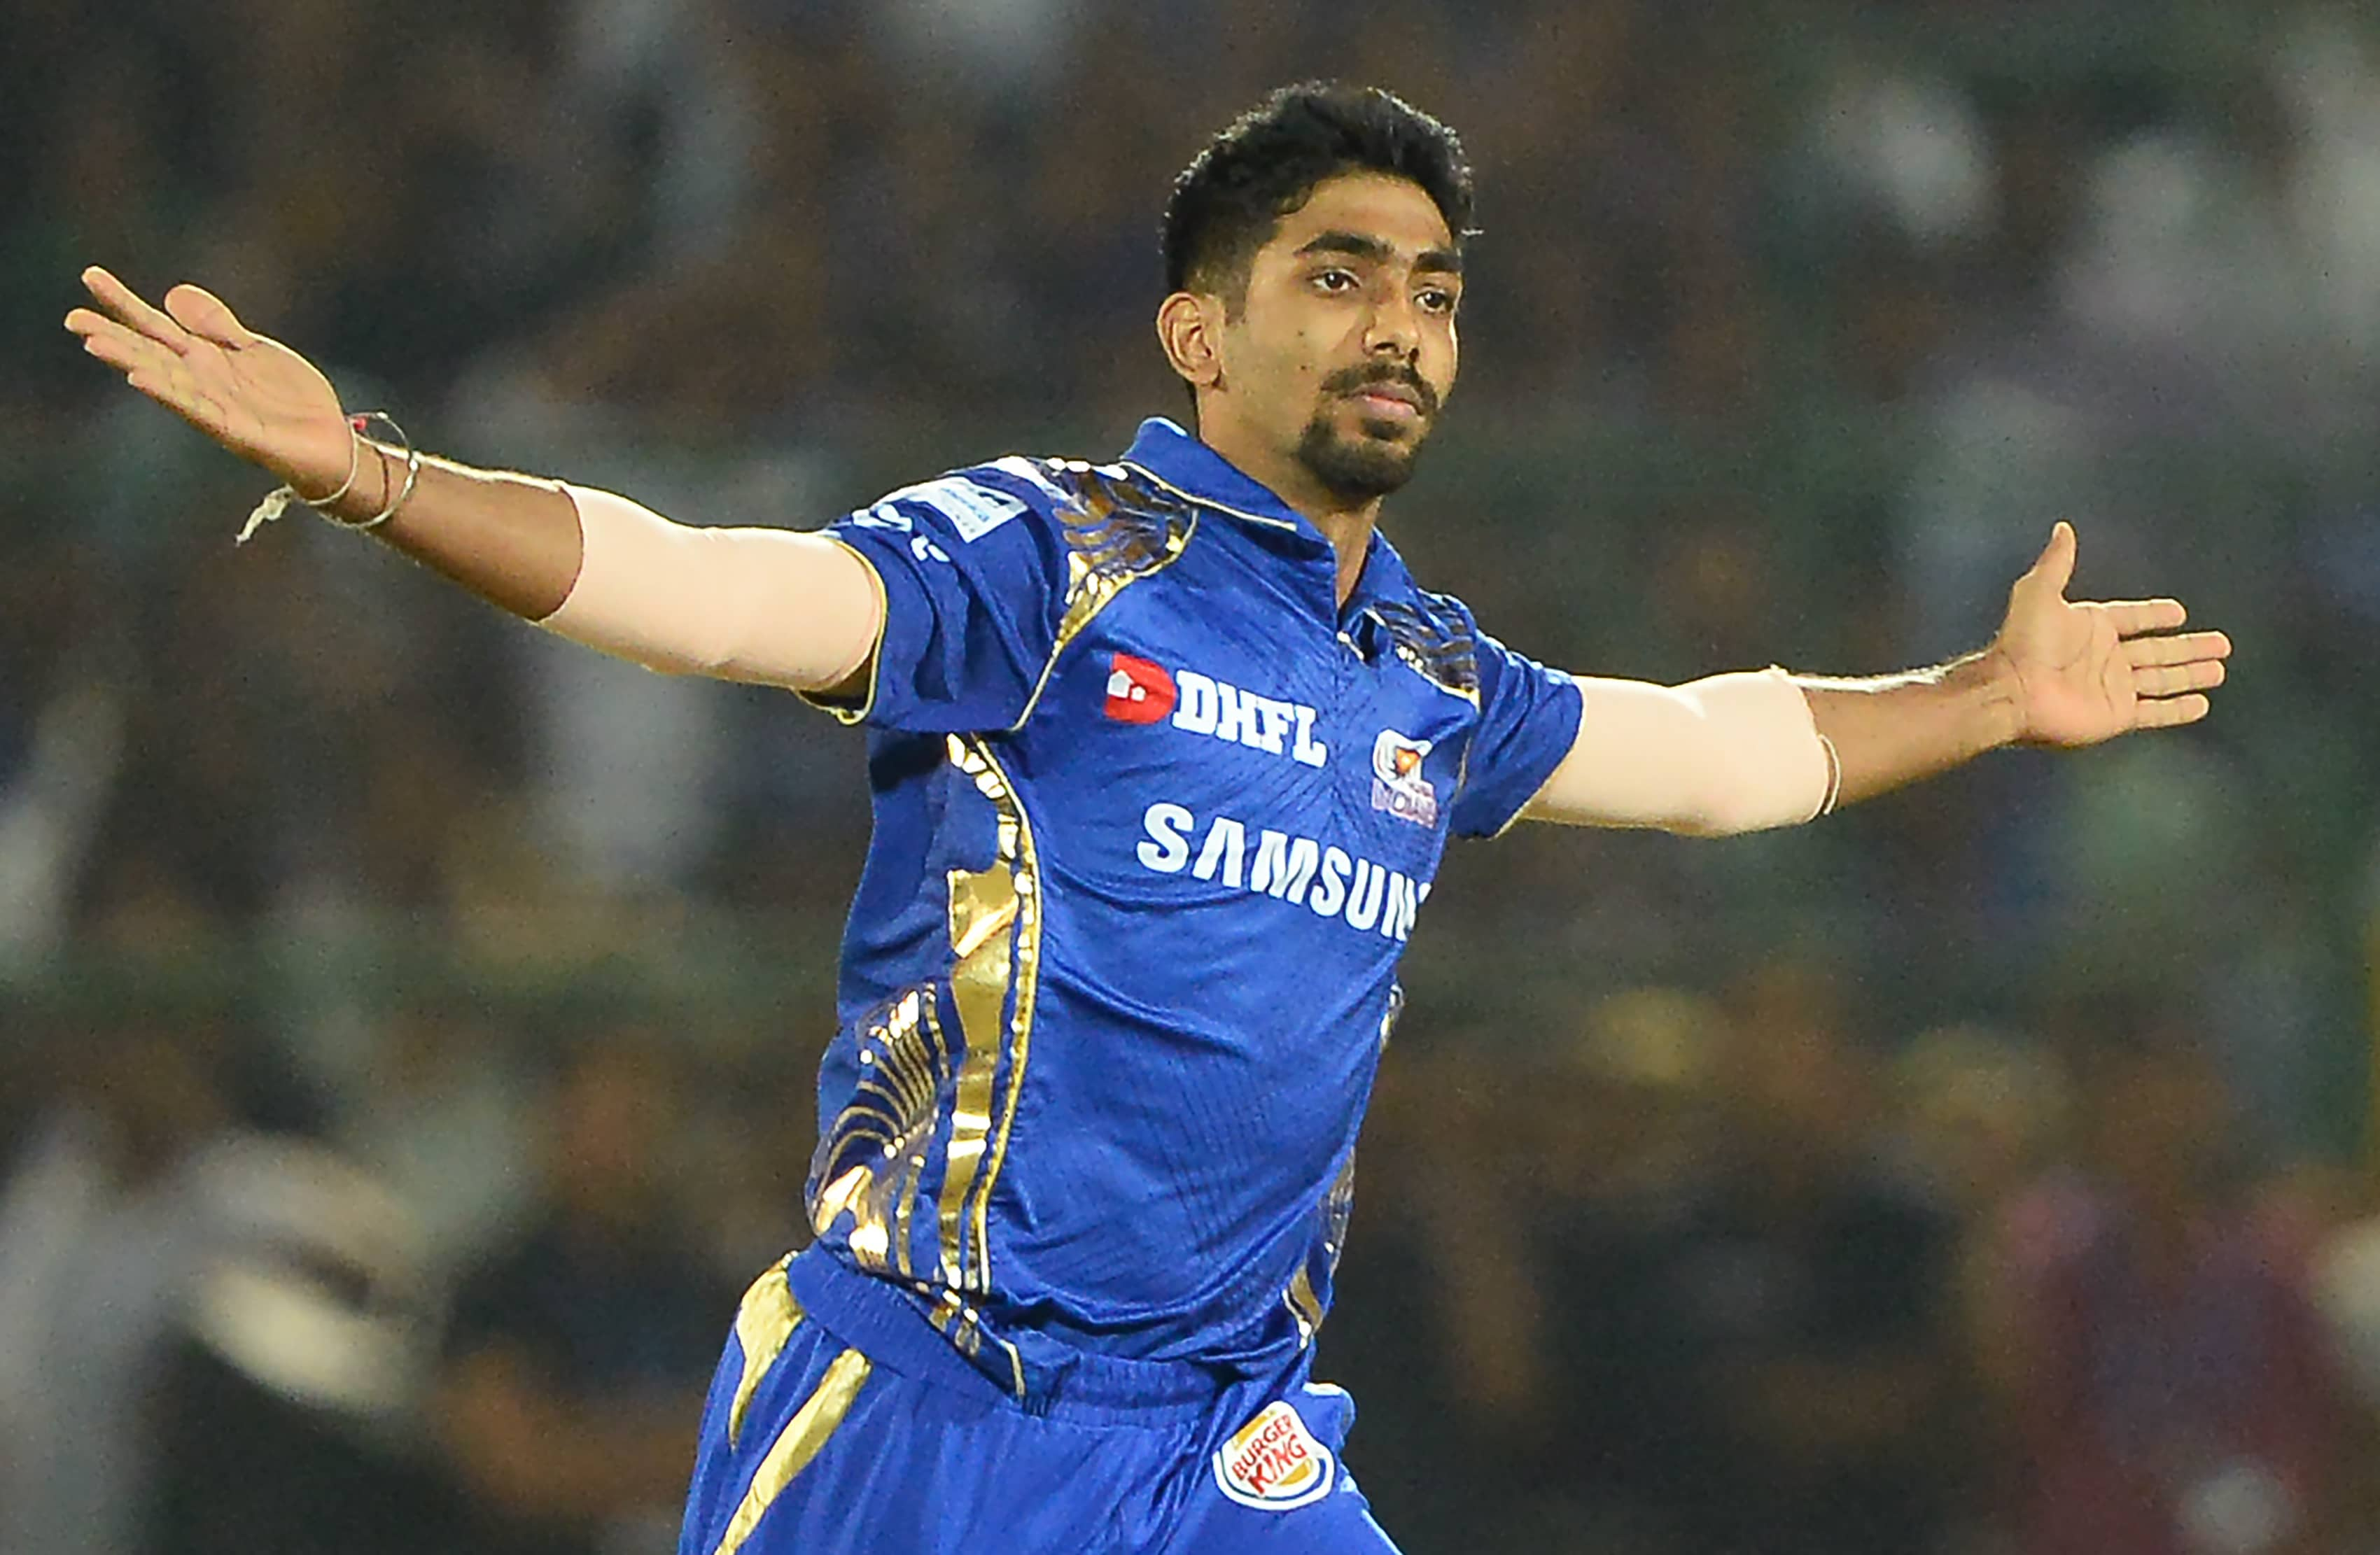 """""""Youll Have To Face Me In Nets"""": Jasprit Bumrah Welcomes Chris Lynn To Mumbai Indians"""